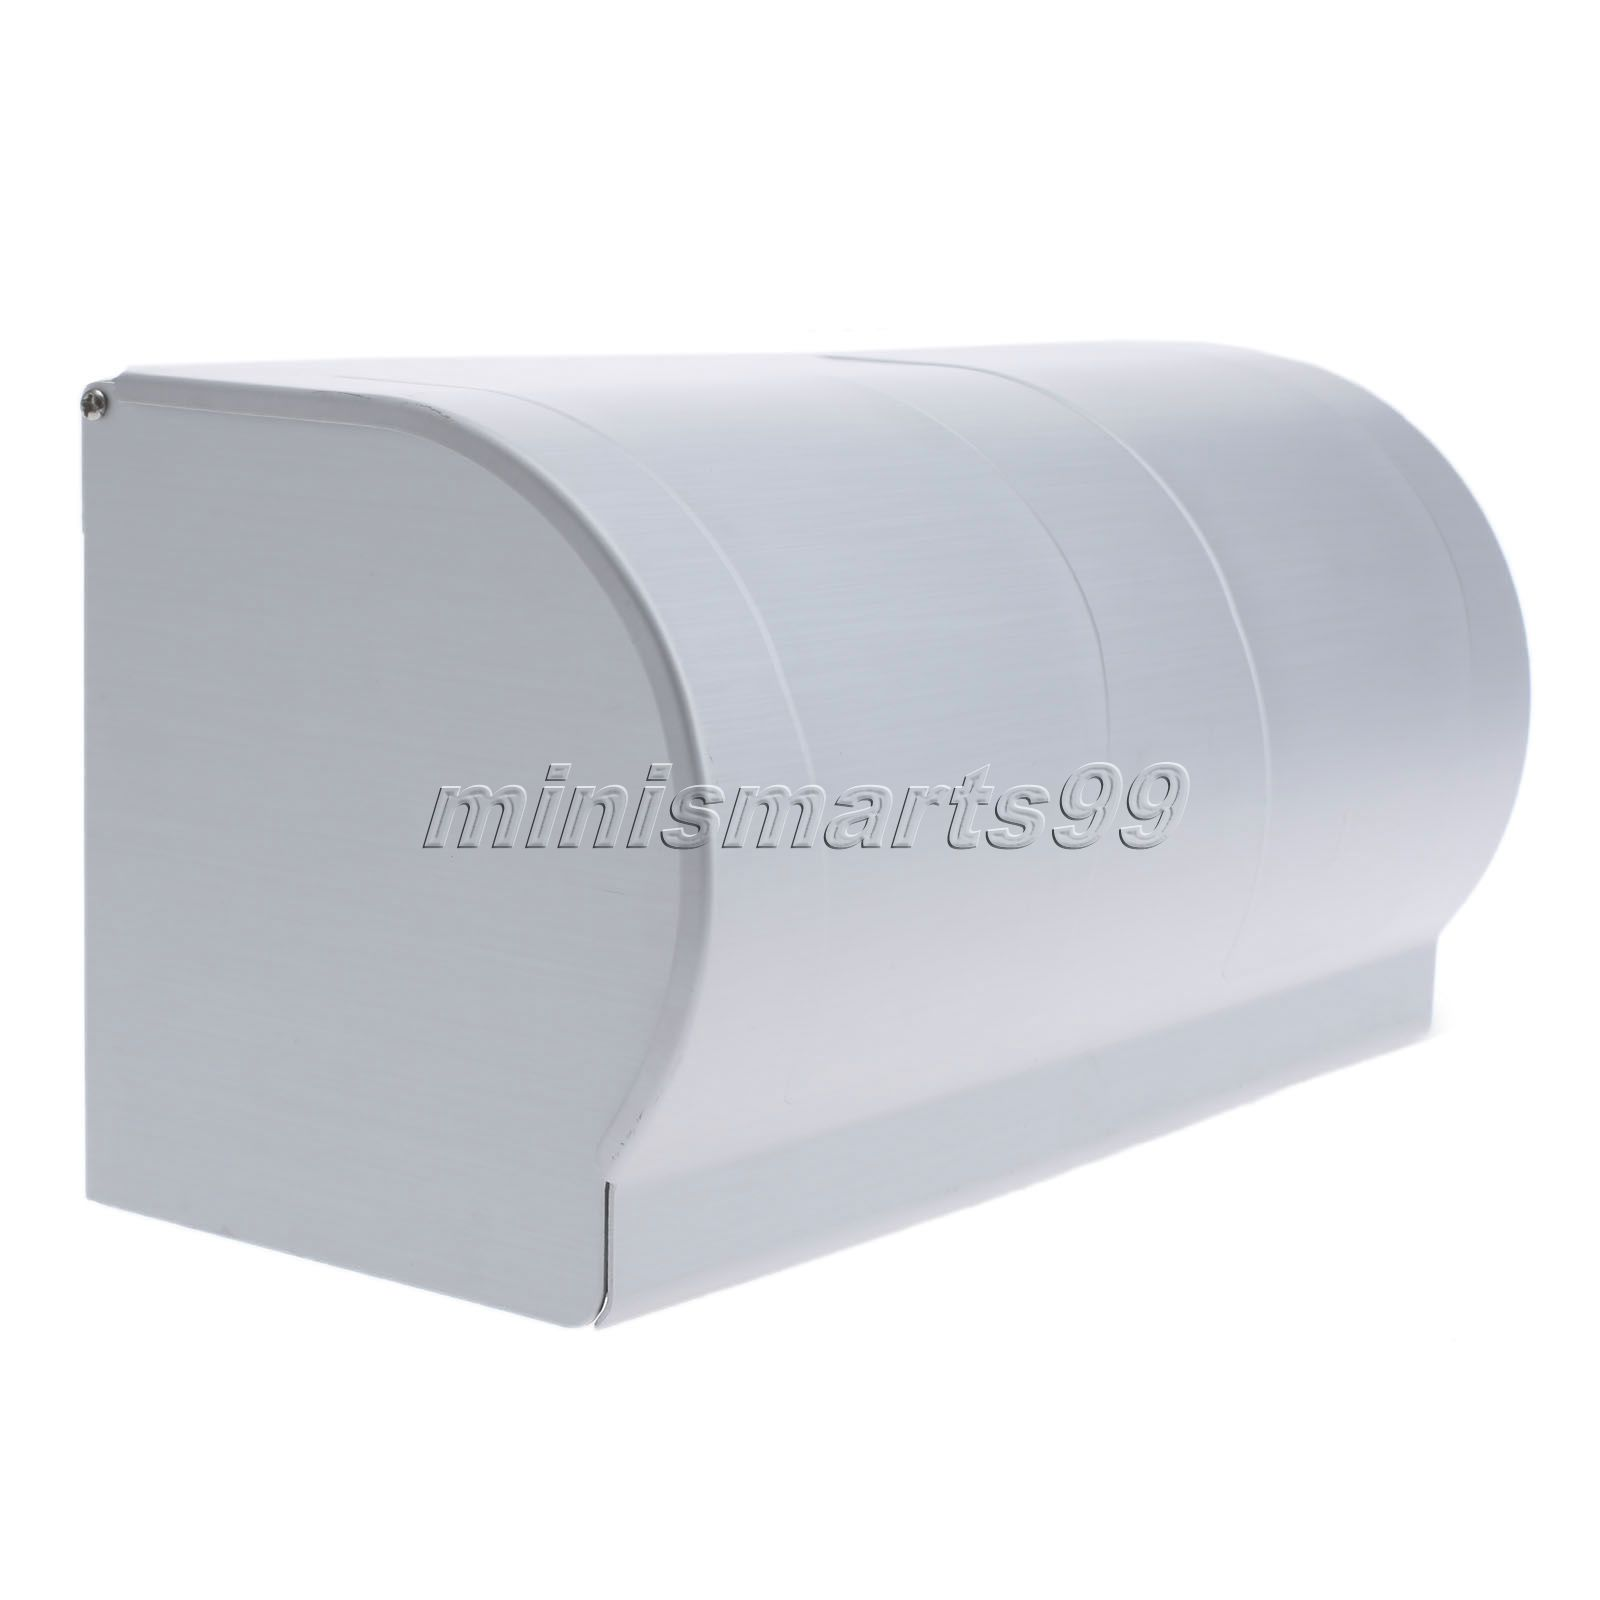 Aliexpress com Buy Wall Mounted Toilet Paper Holder Cover Roll Tissue Box  Storage Tissue Paper Shelves. Bathroom Chests Storage